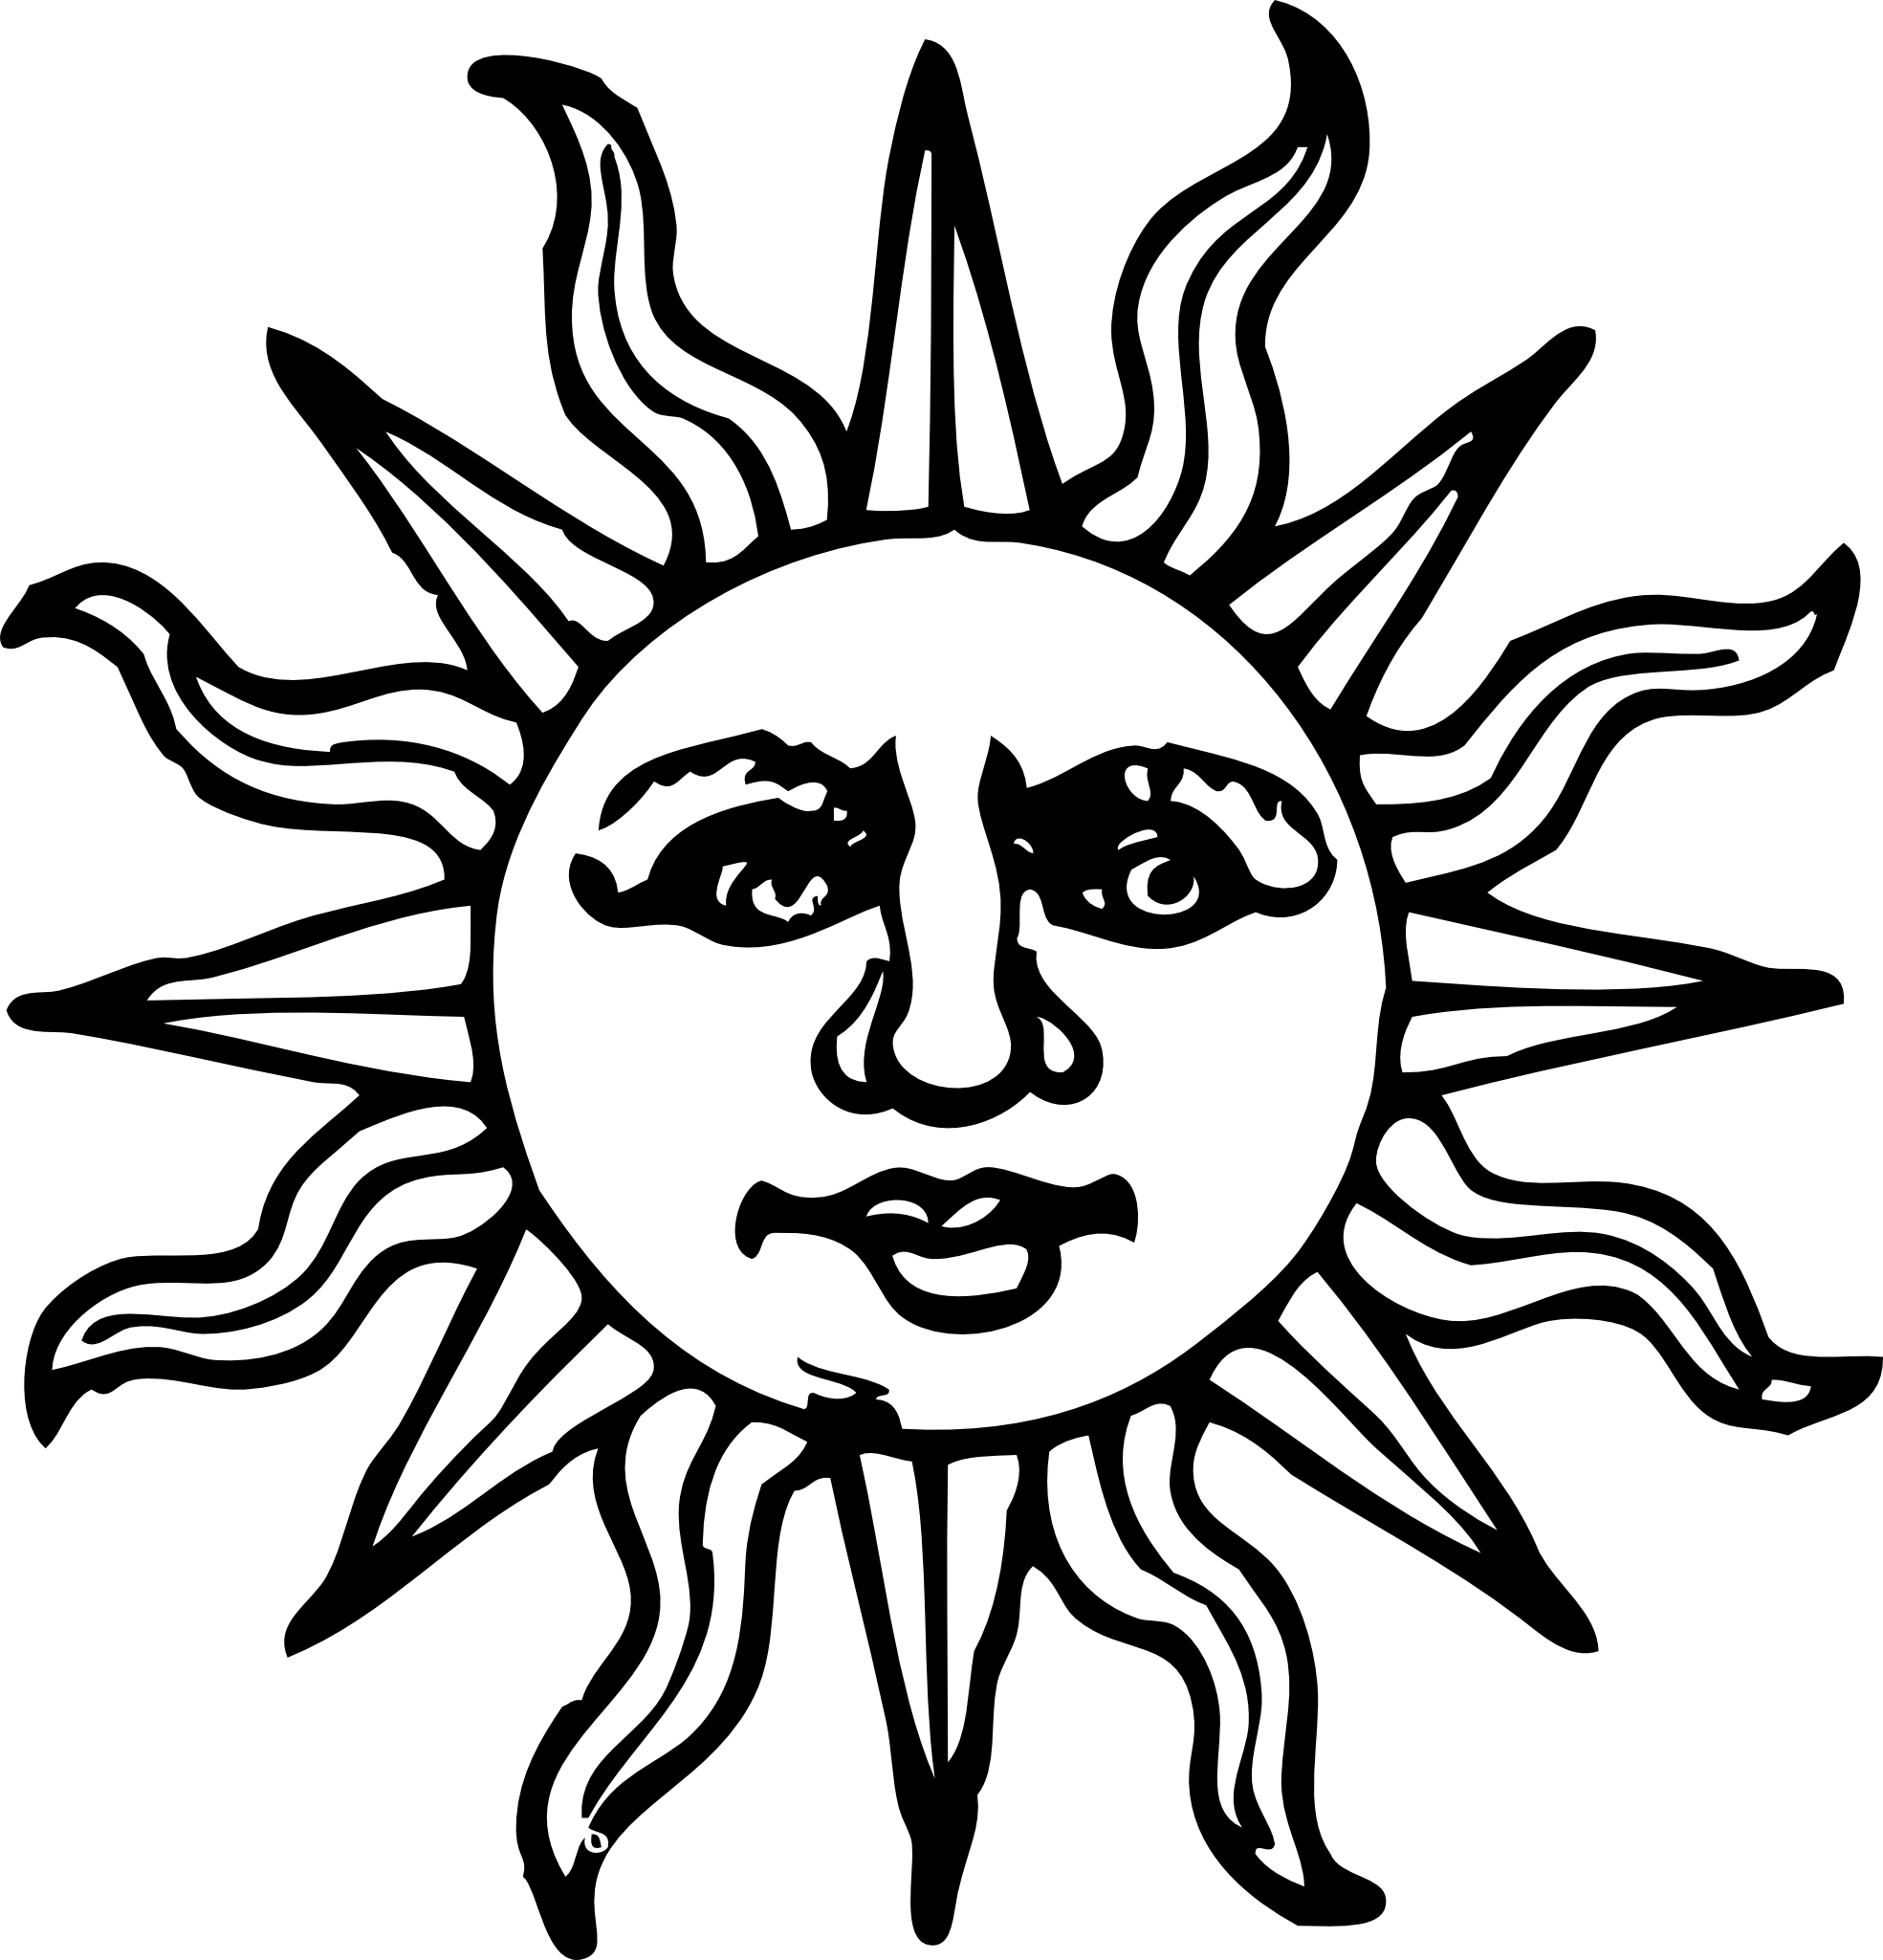 Banner Vector Black And White Png Happy Sun Png Black And White